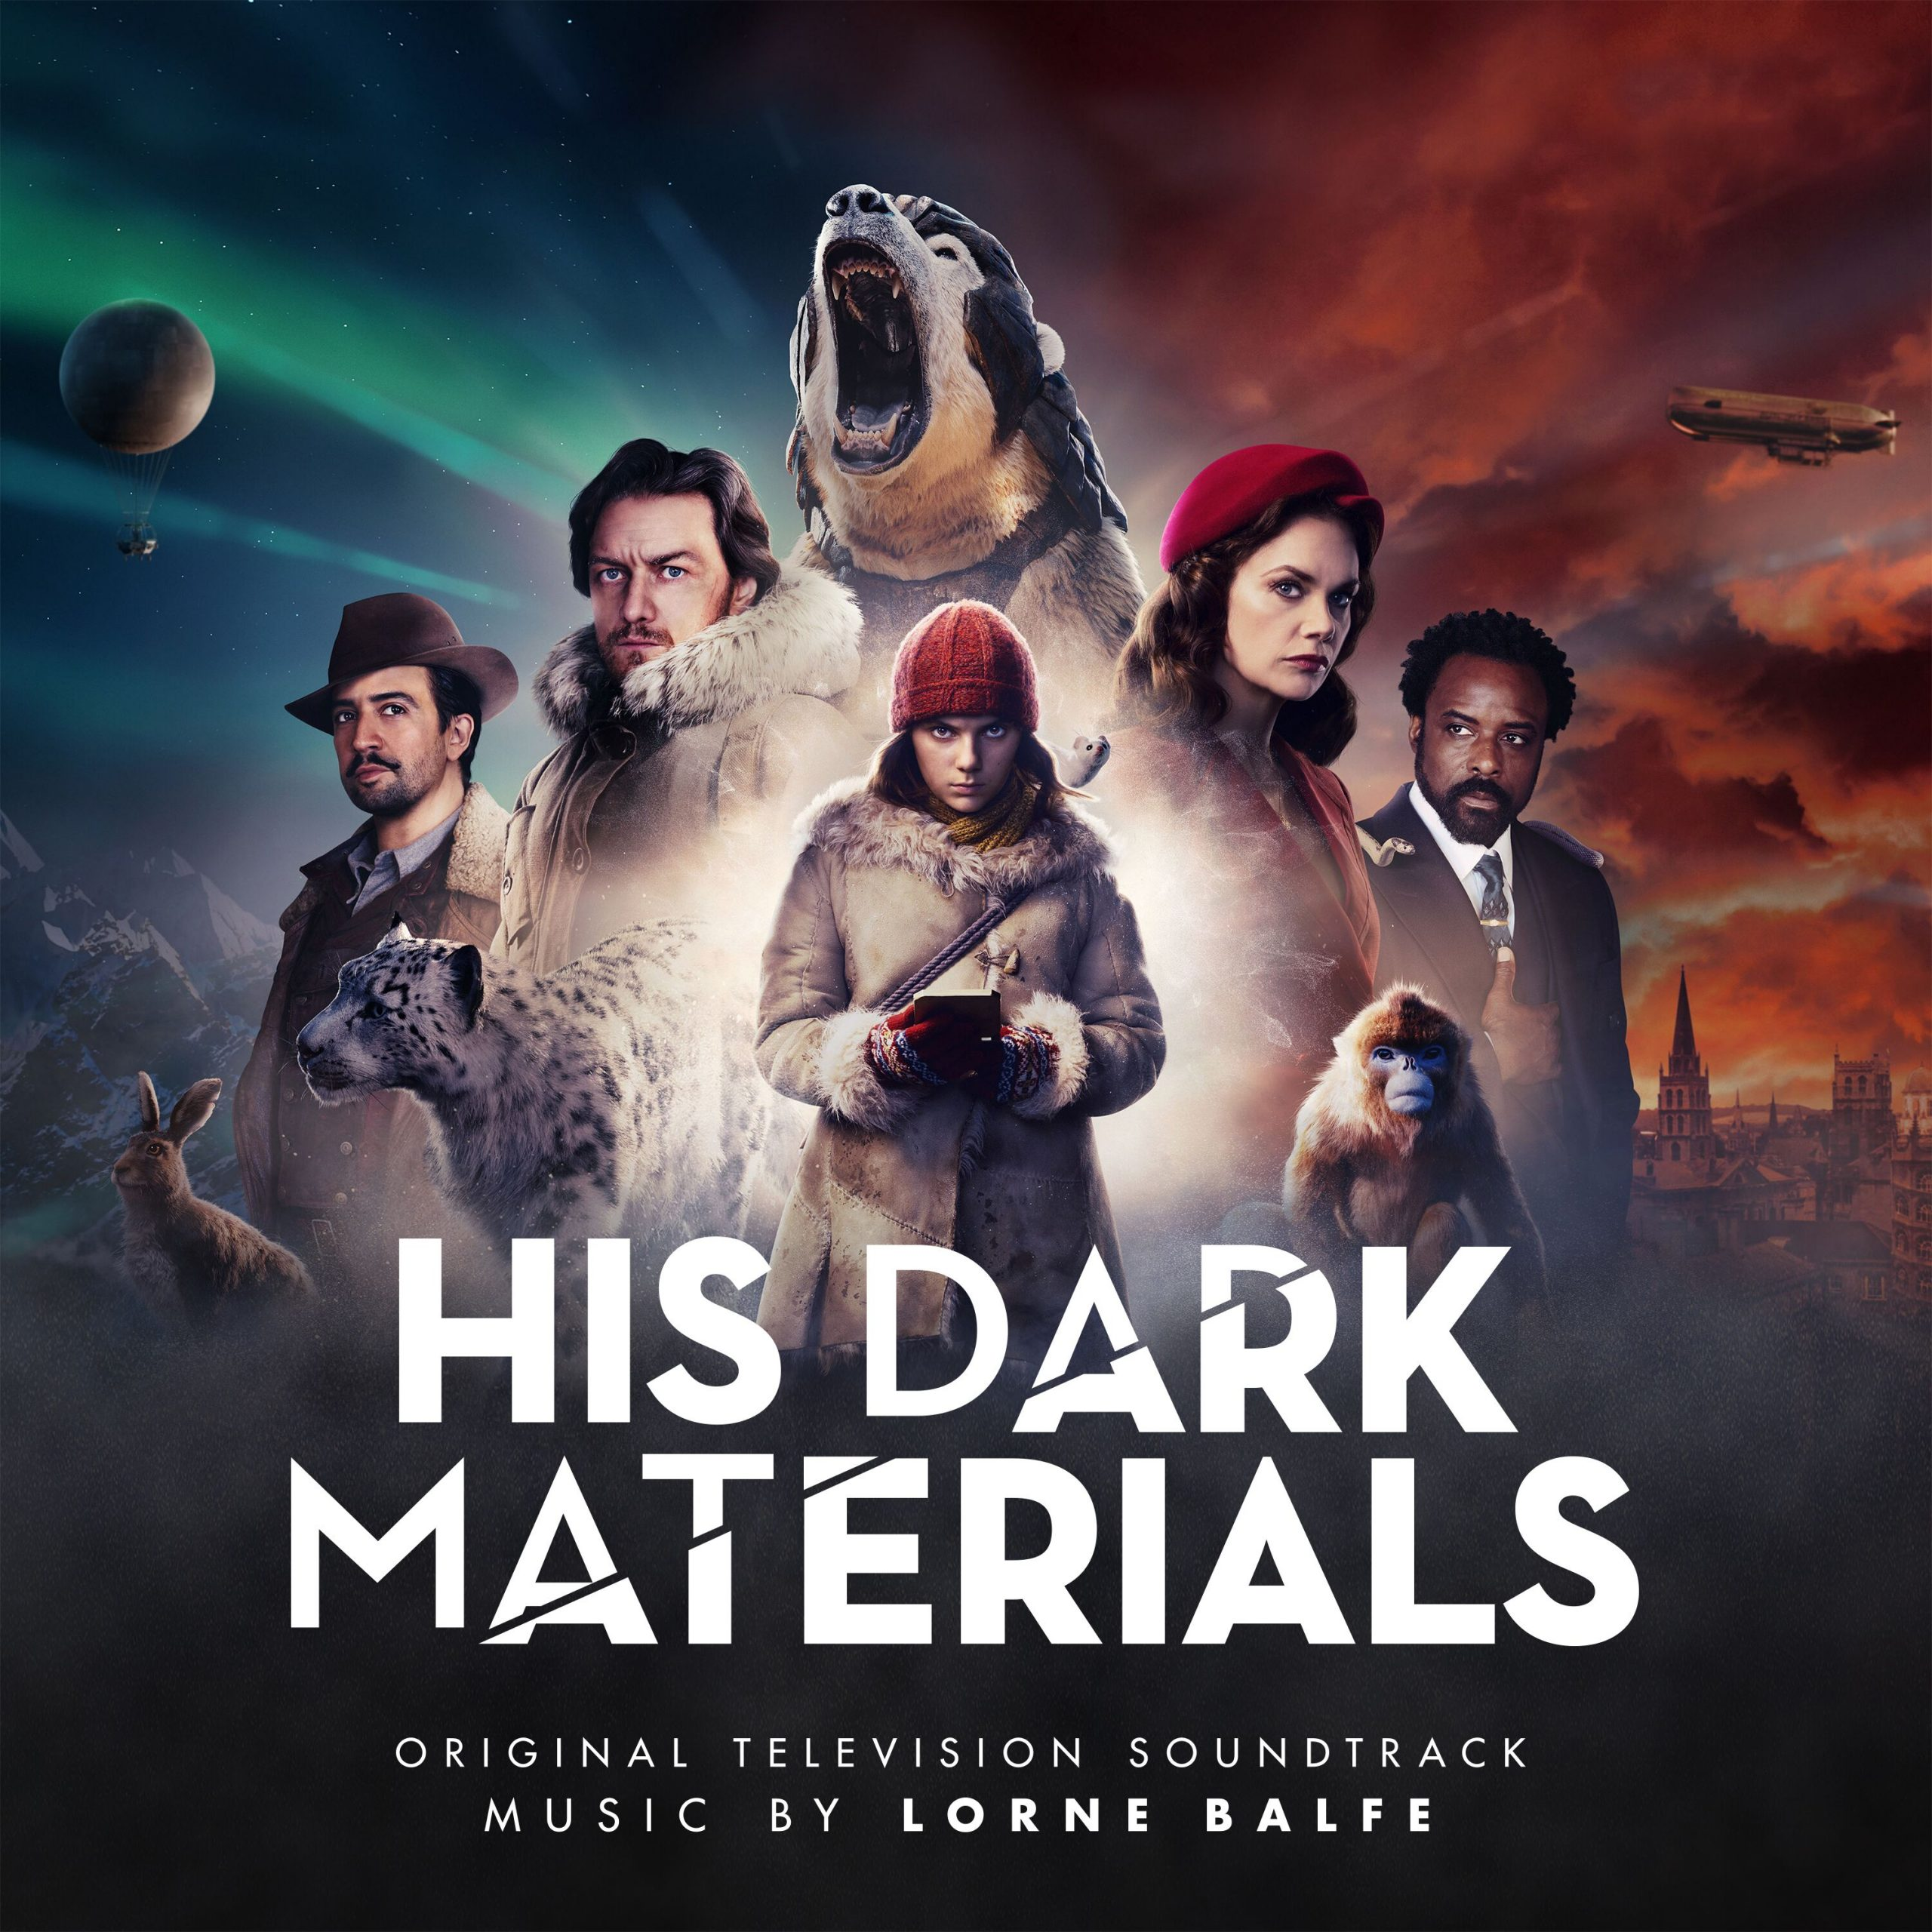 [News] Silva Screen Records Presents HIS DARK MATERIALS